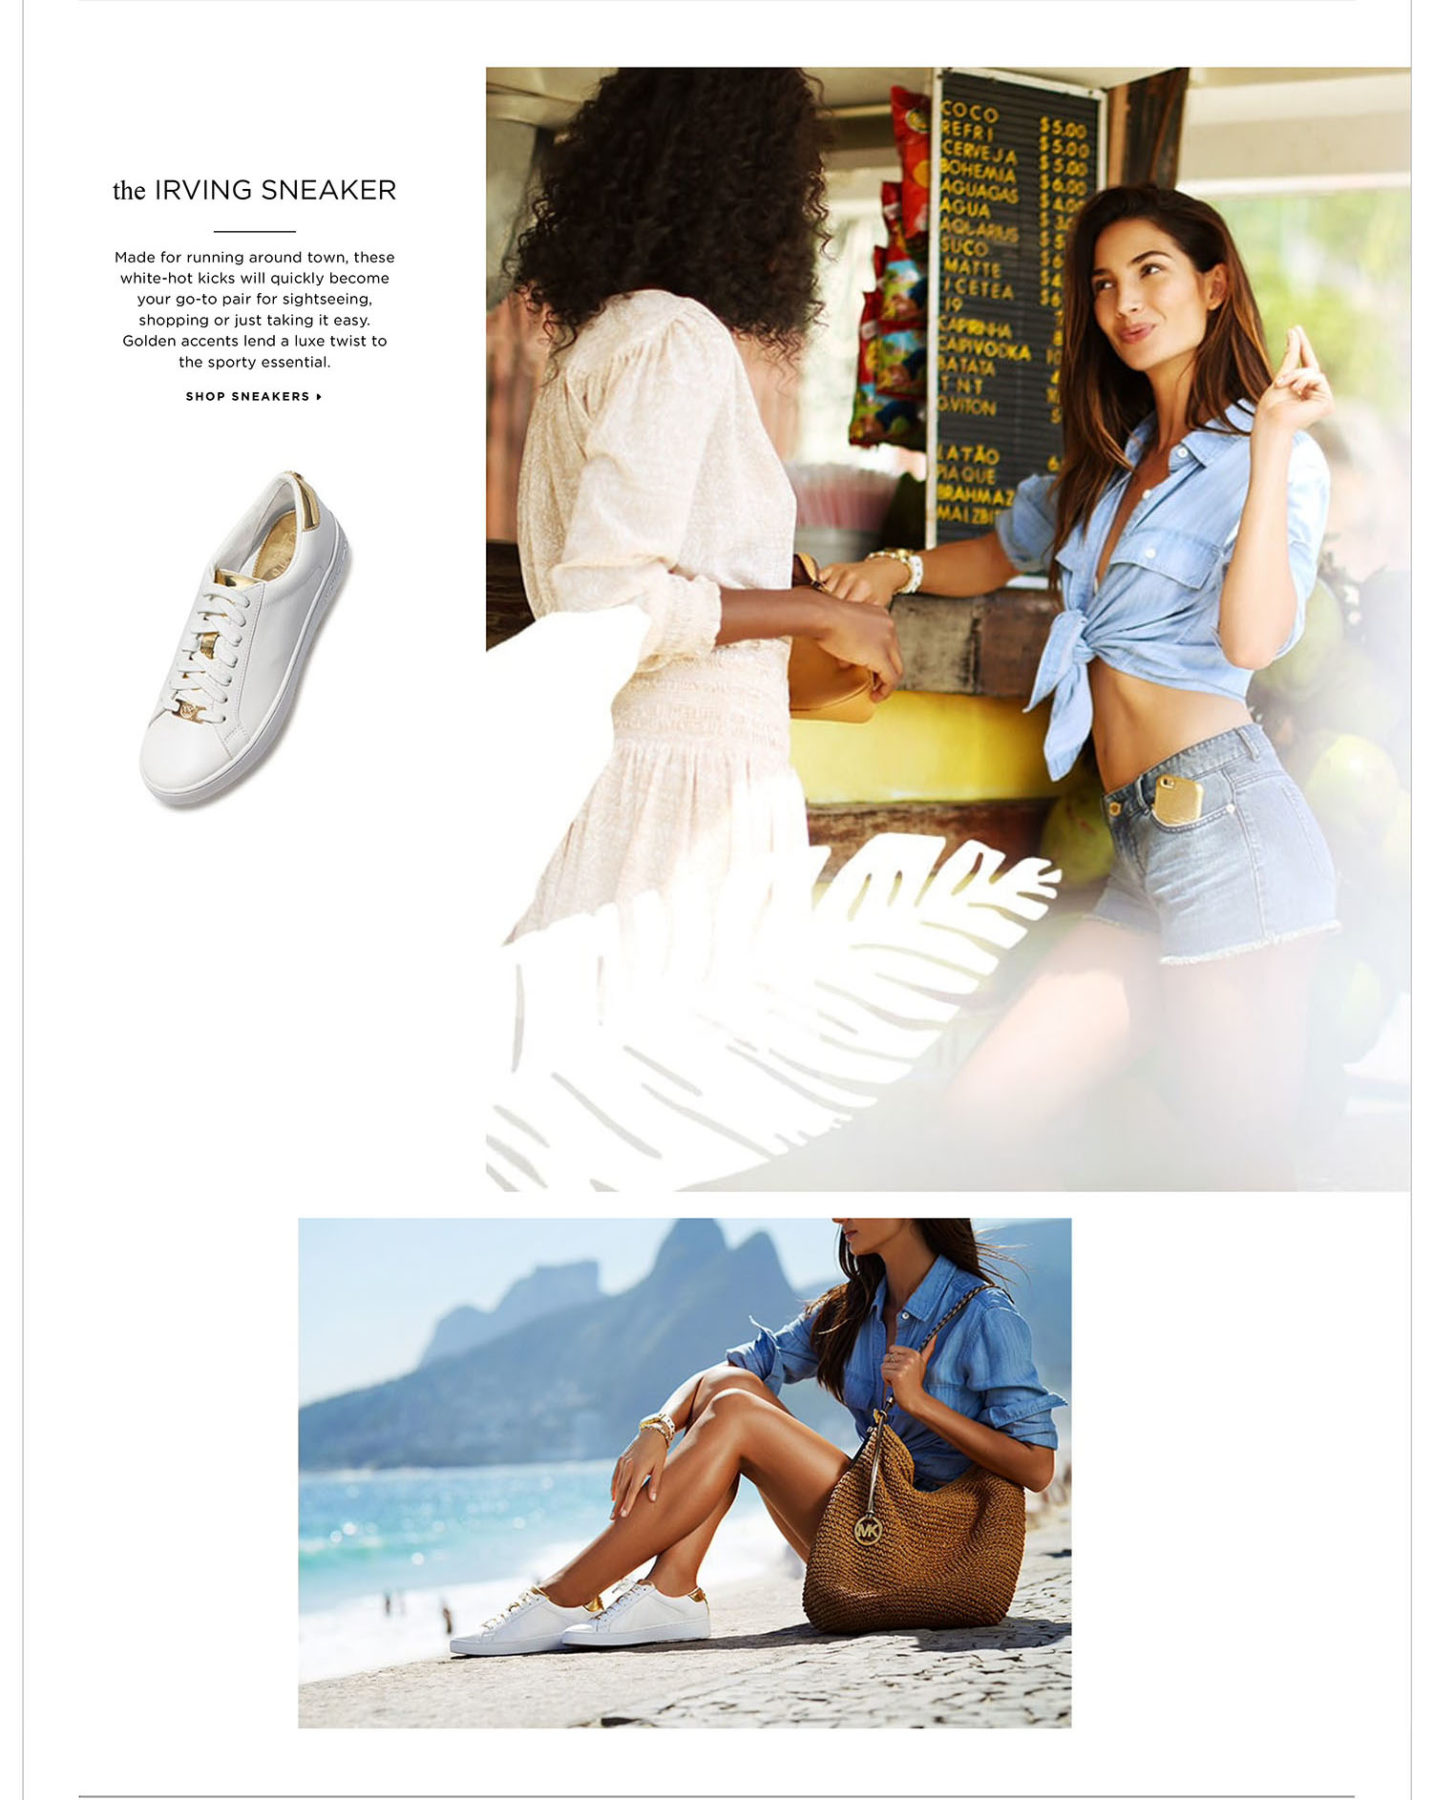 Michael Kors Jet Set 6 | Destination Kors _WEB EXECUTION_sm_p3